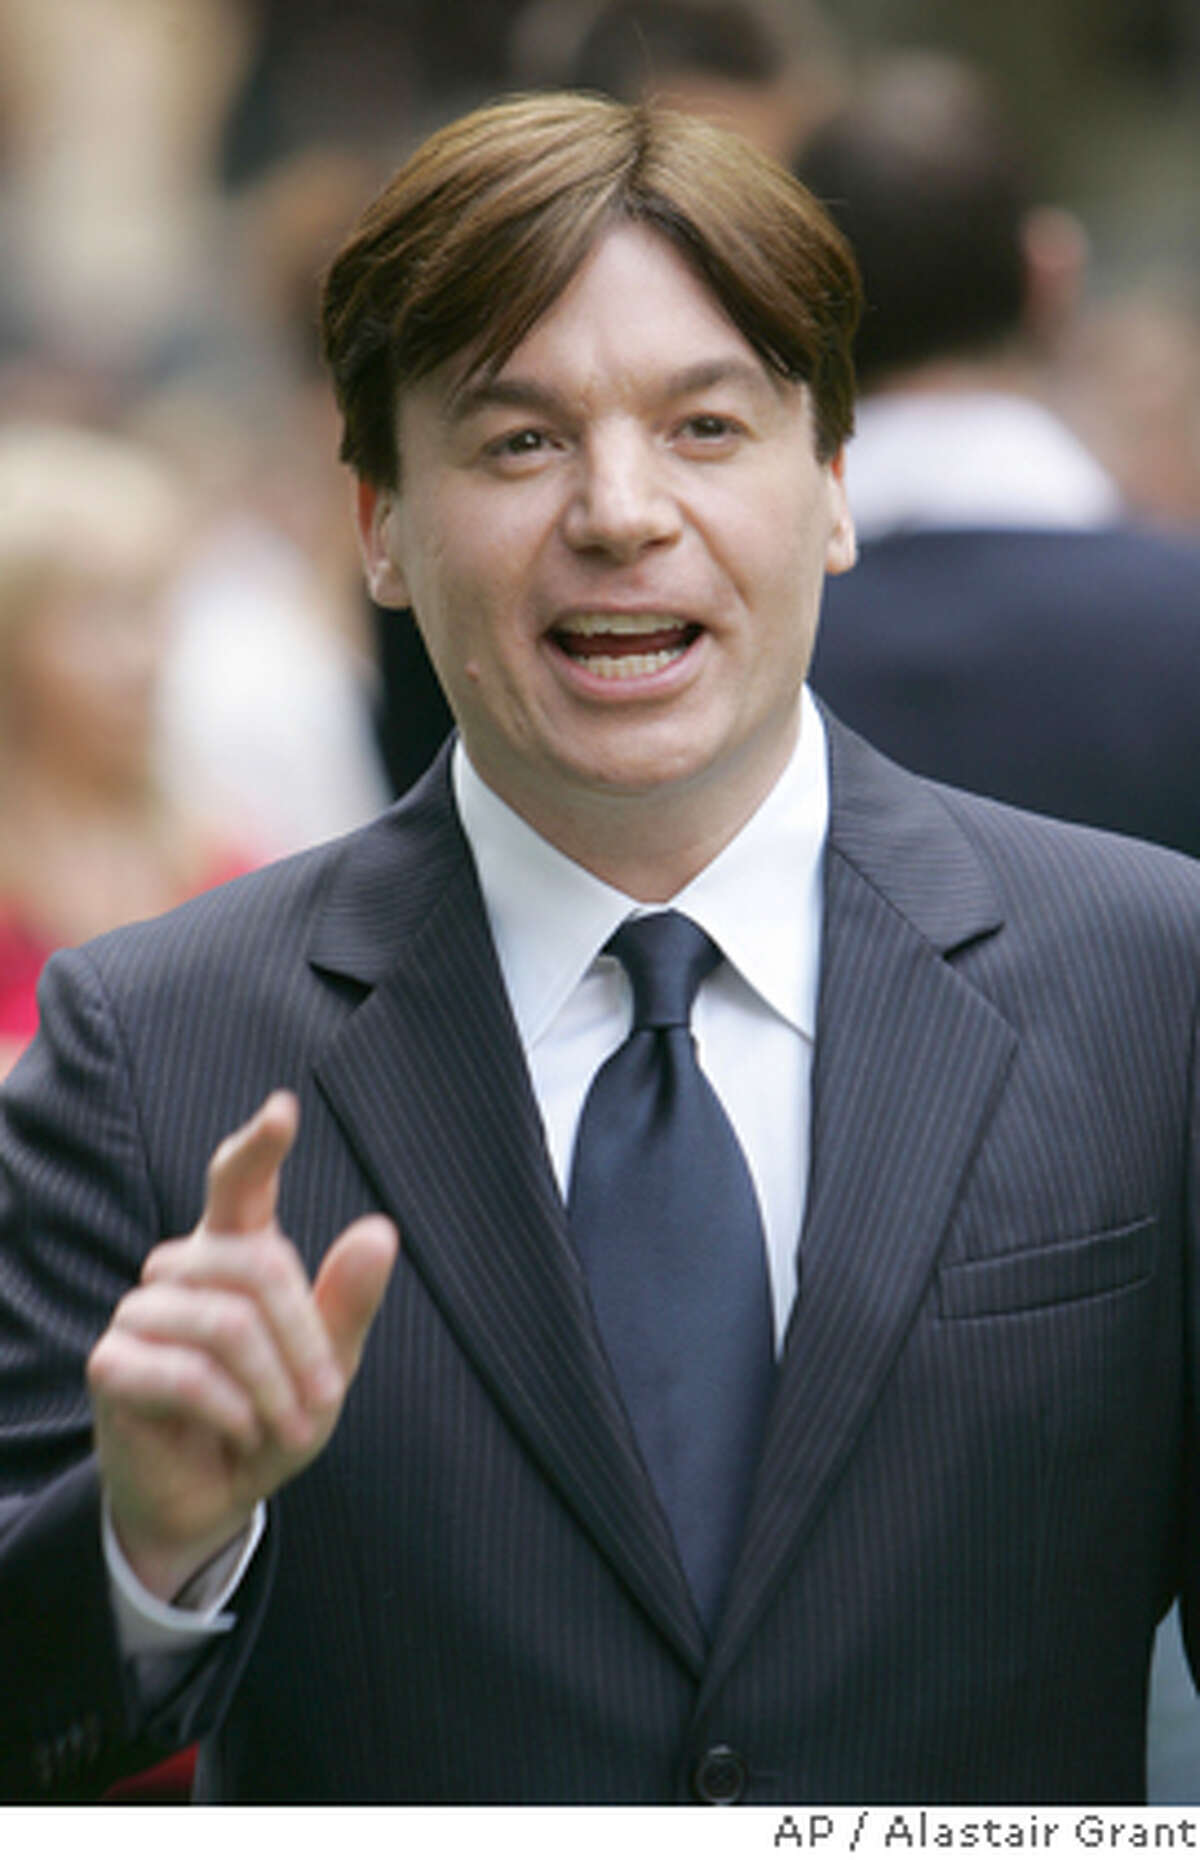 **FILE** Canadian actor Mike Myers, reacts to photographers at the London premier of their animated film ' Shrek the Third', in London in this June, 11, 2007 file photo. (AP Photo/Alastair Grant, file) Ran on: 04-10-2008 Mike Myers